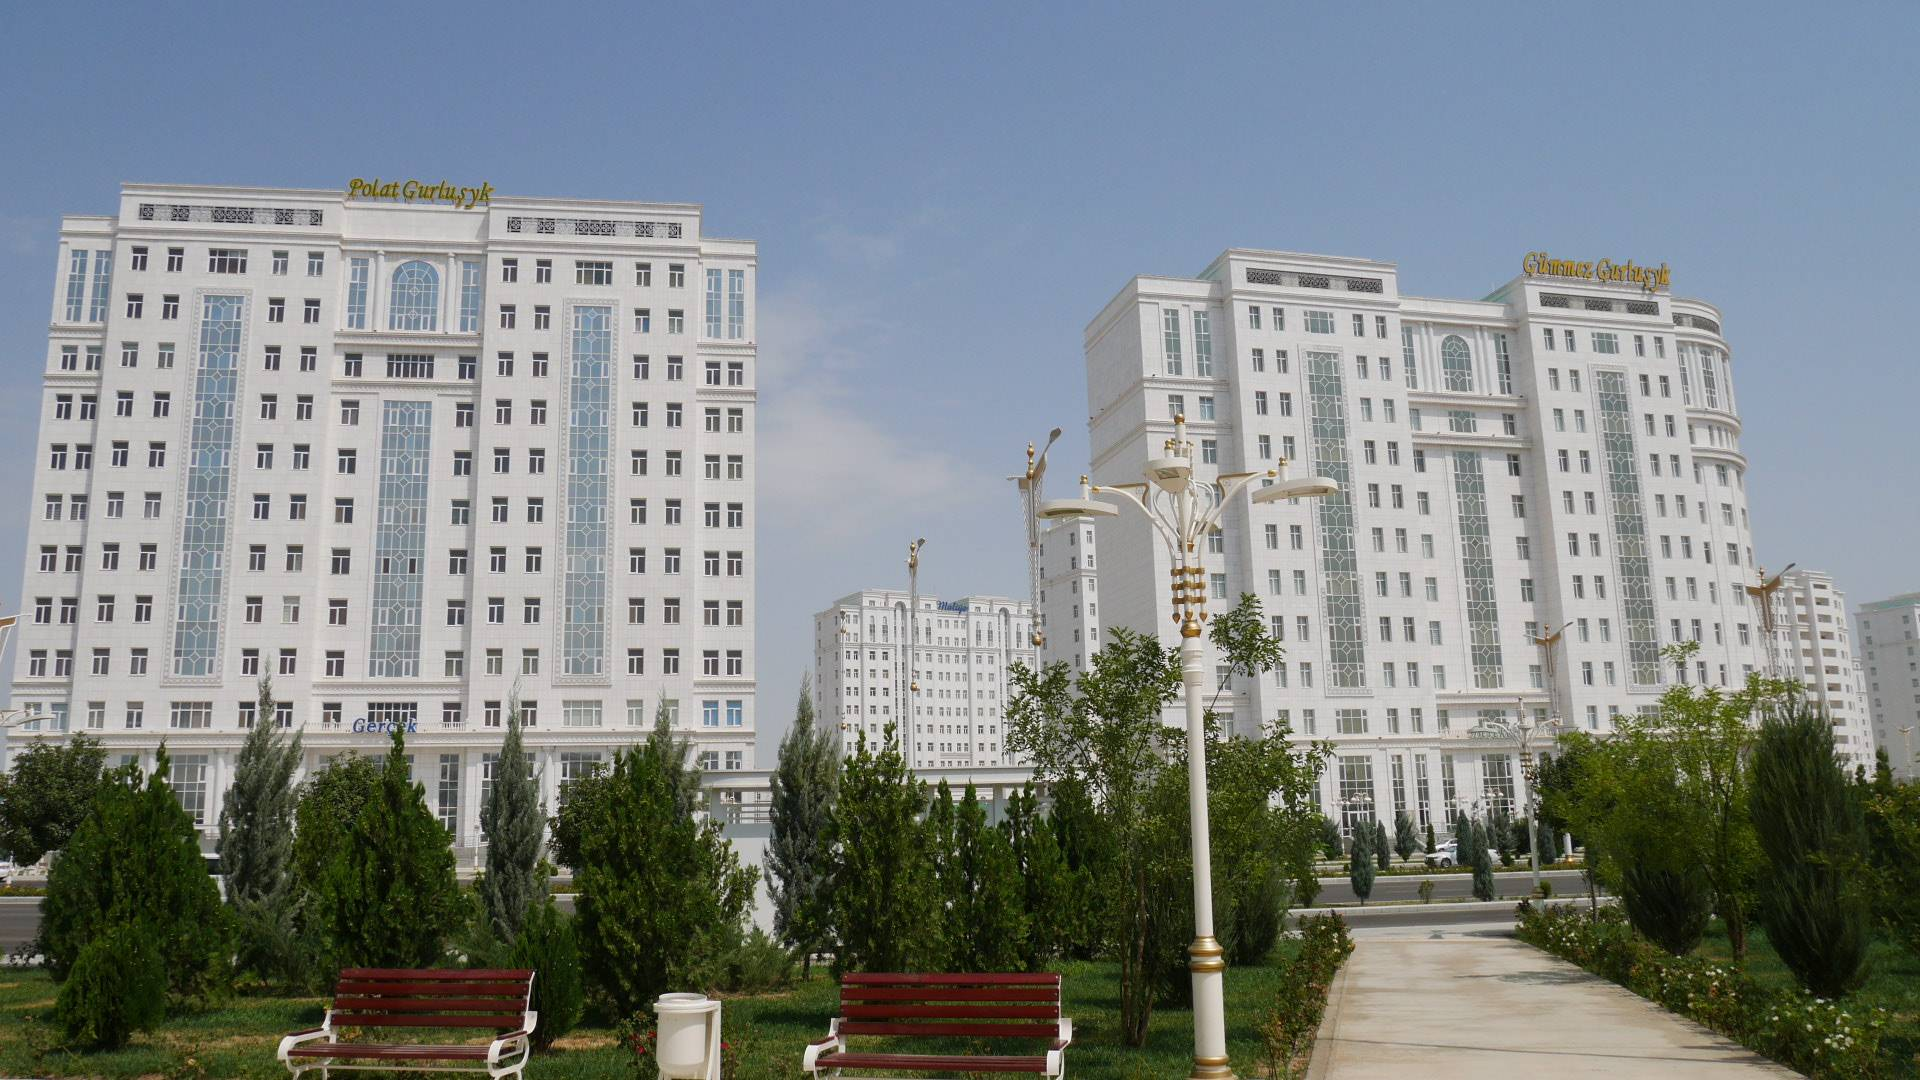 Photo 1: Ashgabat, le Las Vegas du dictateur